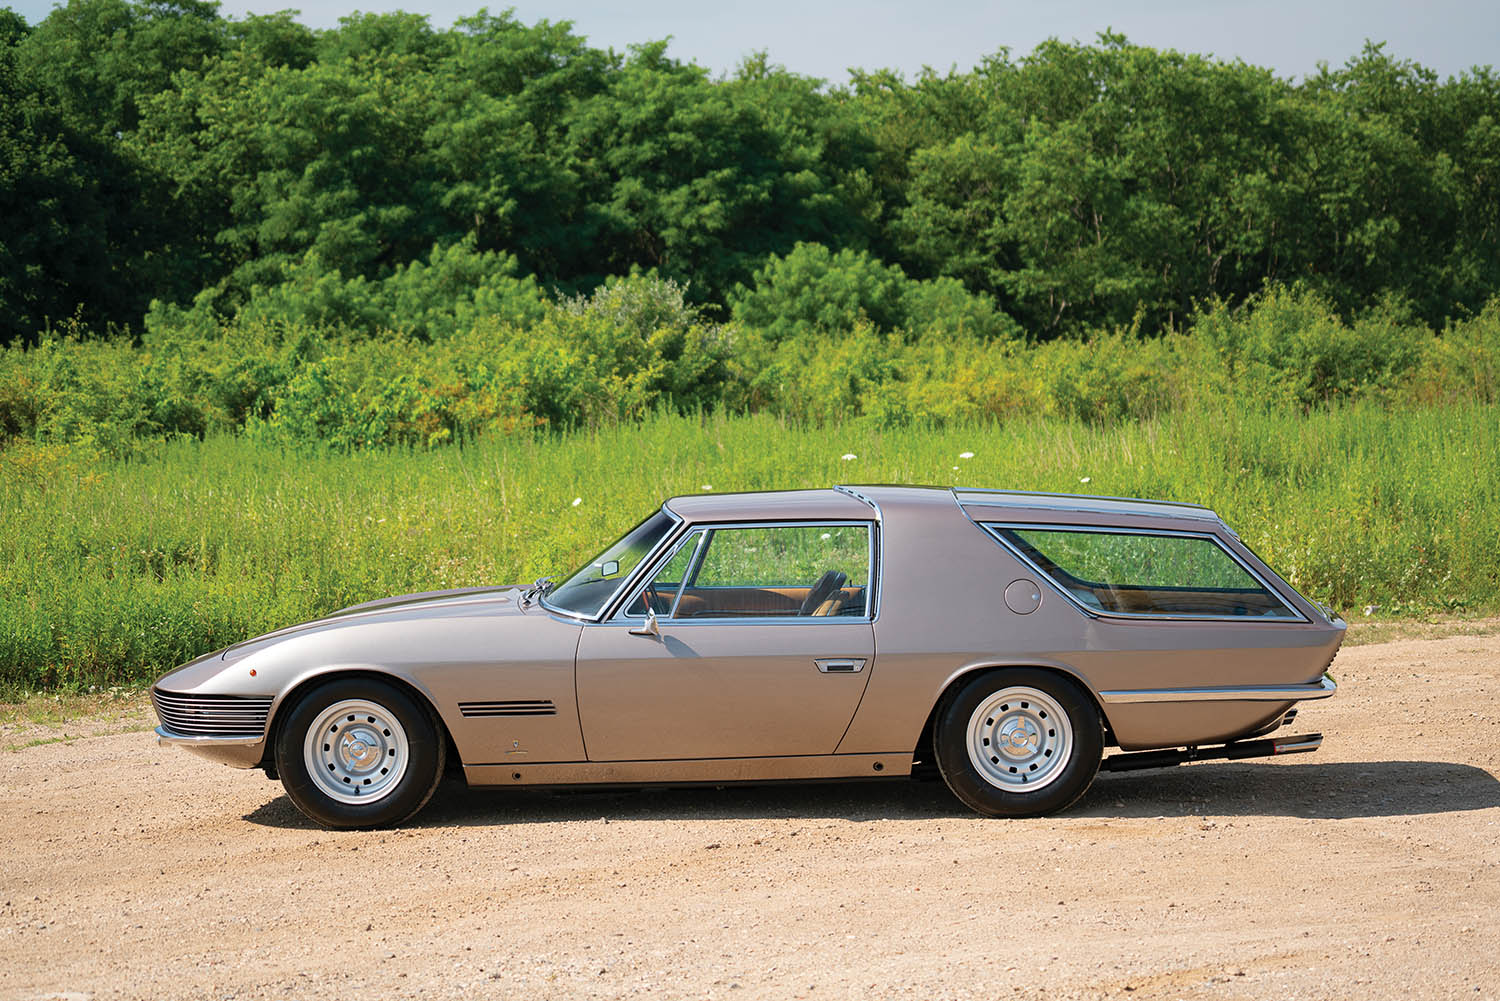 1965-Ferrari-330-GT-2-2-Shooting-Brake-by-Vignale_4.jpg